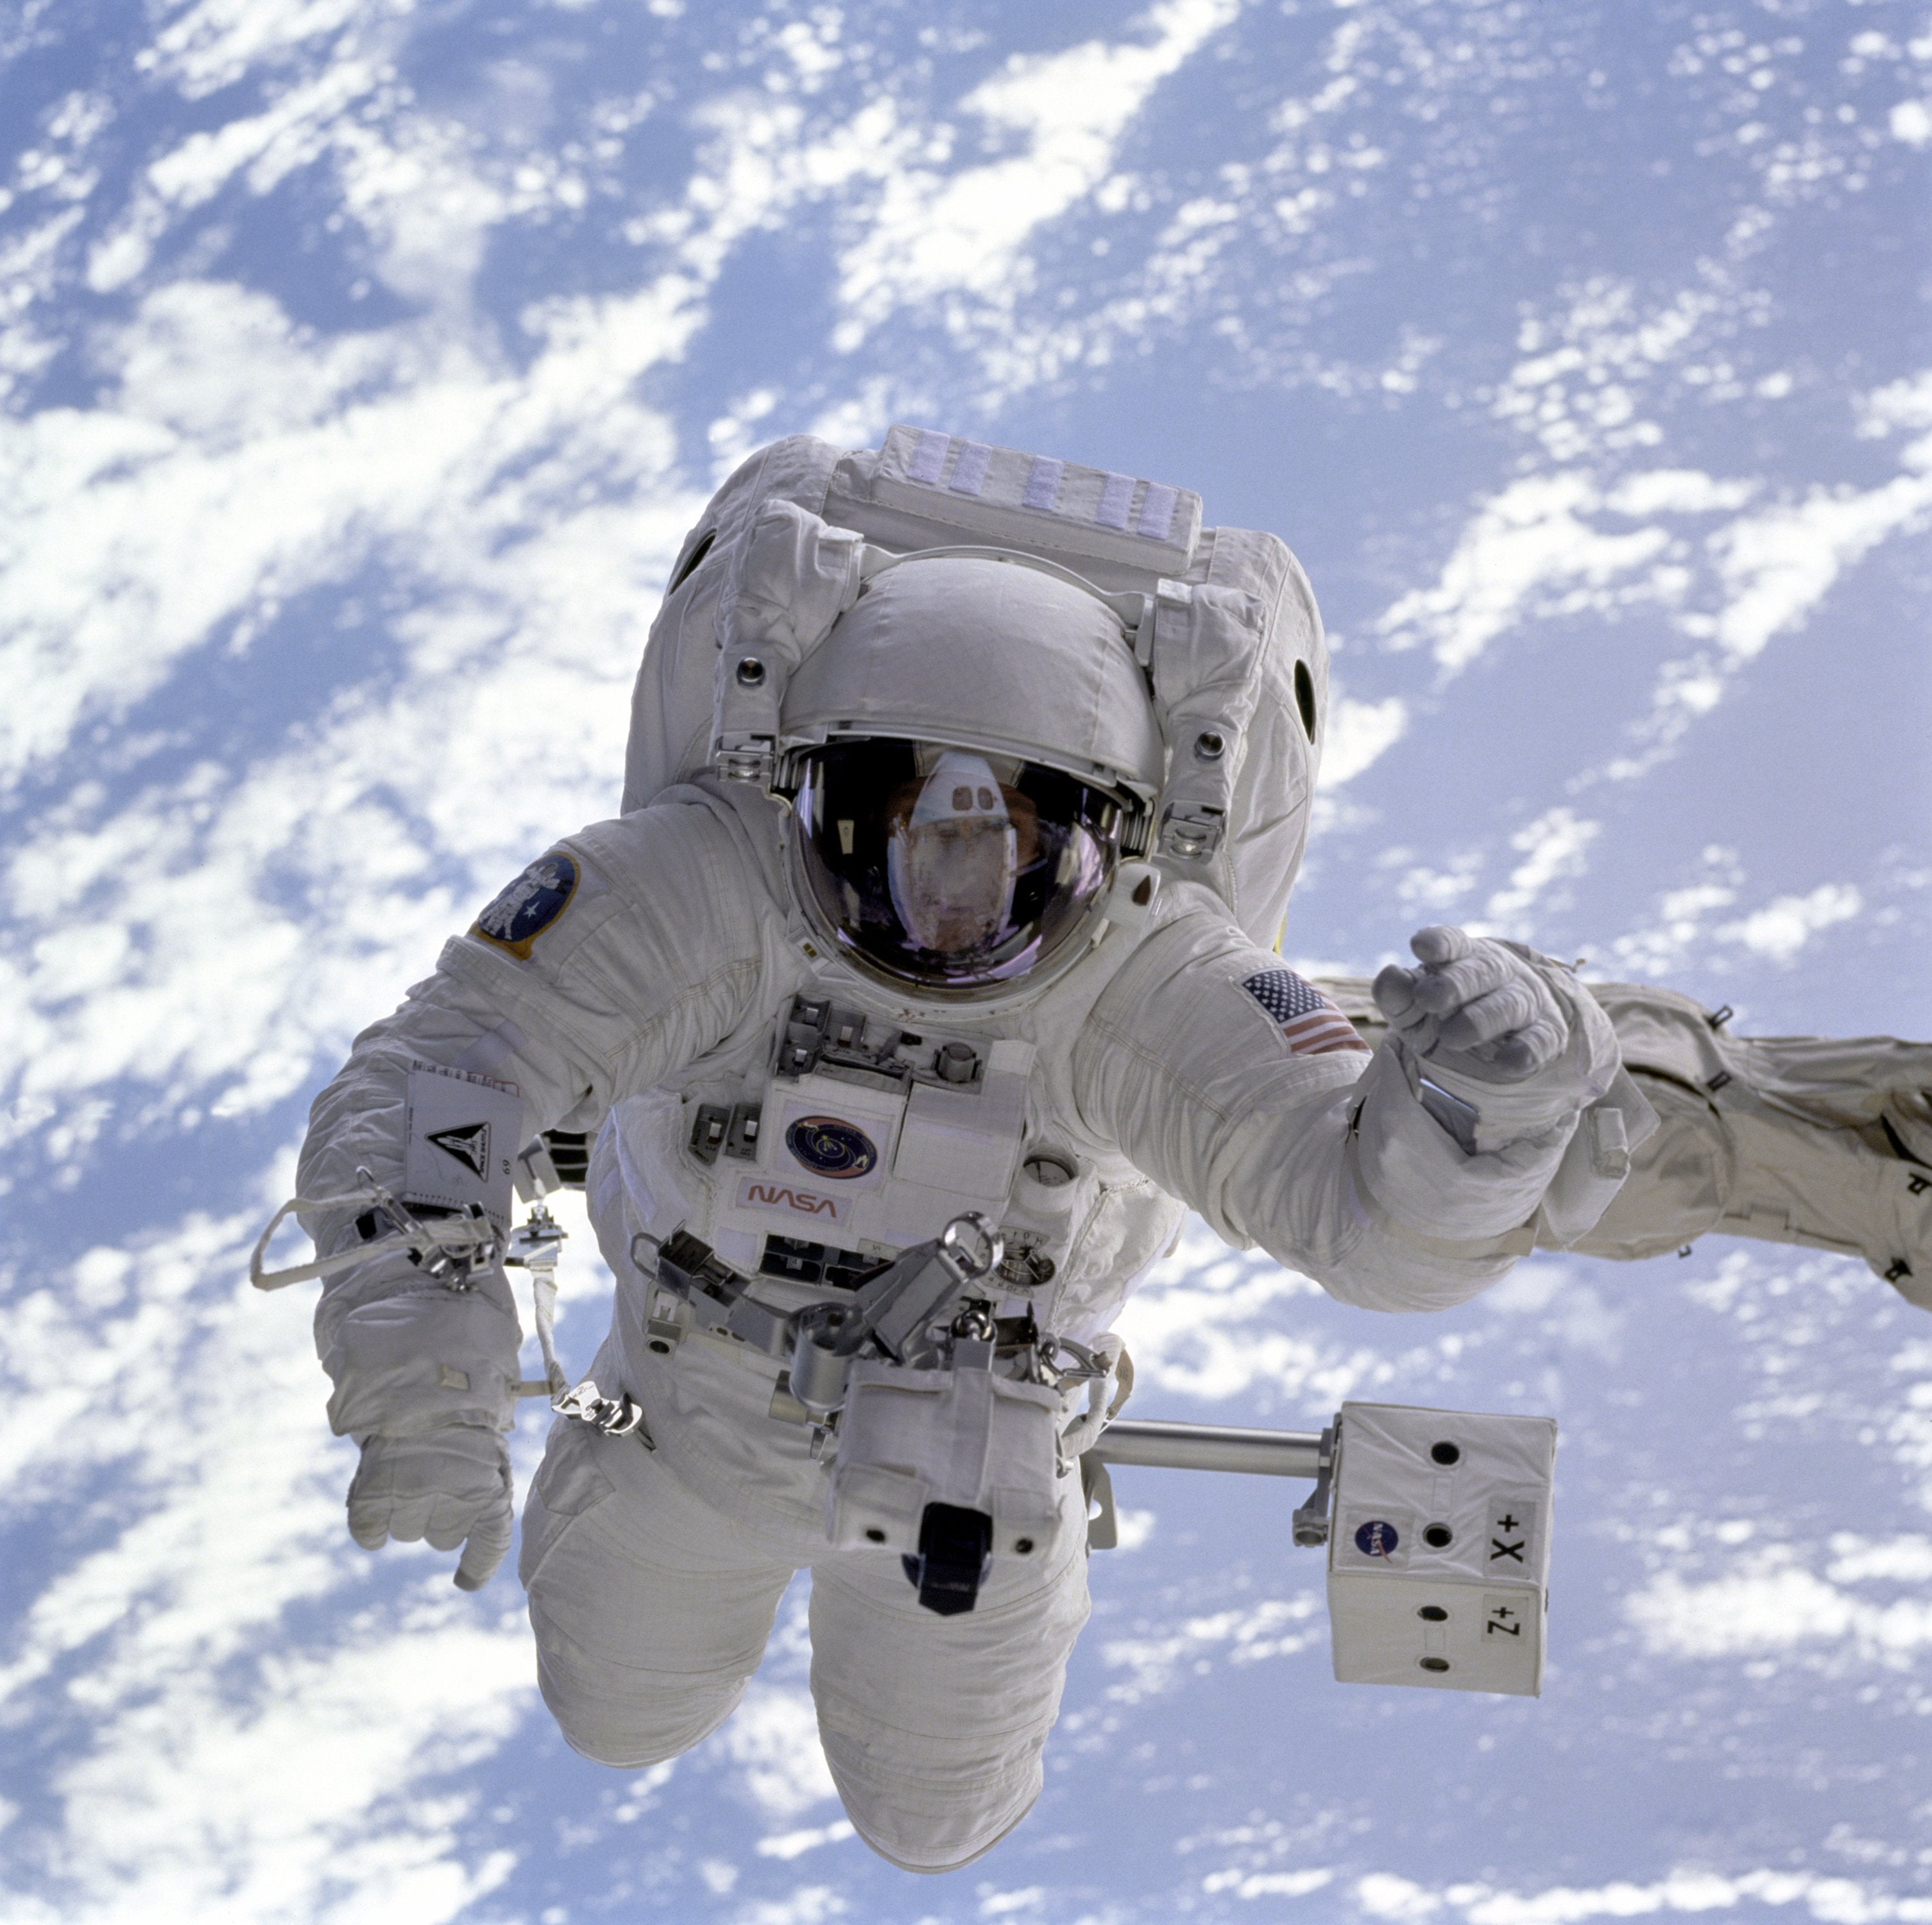 Astronaut. Photo by United States Air Force